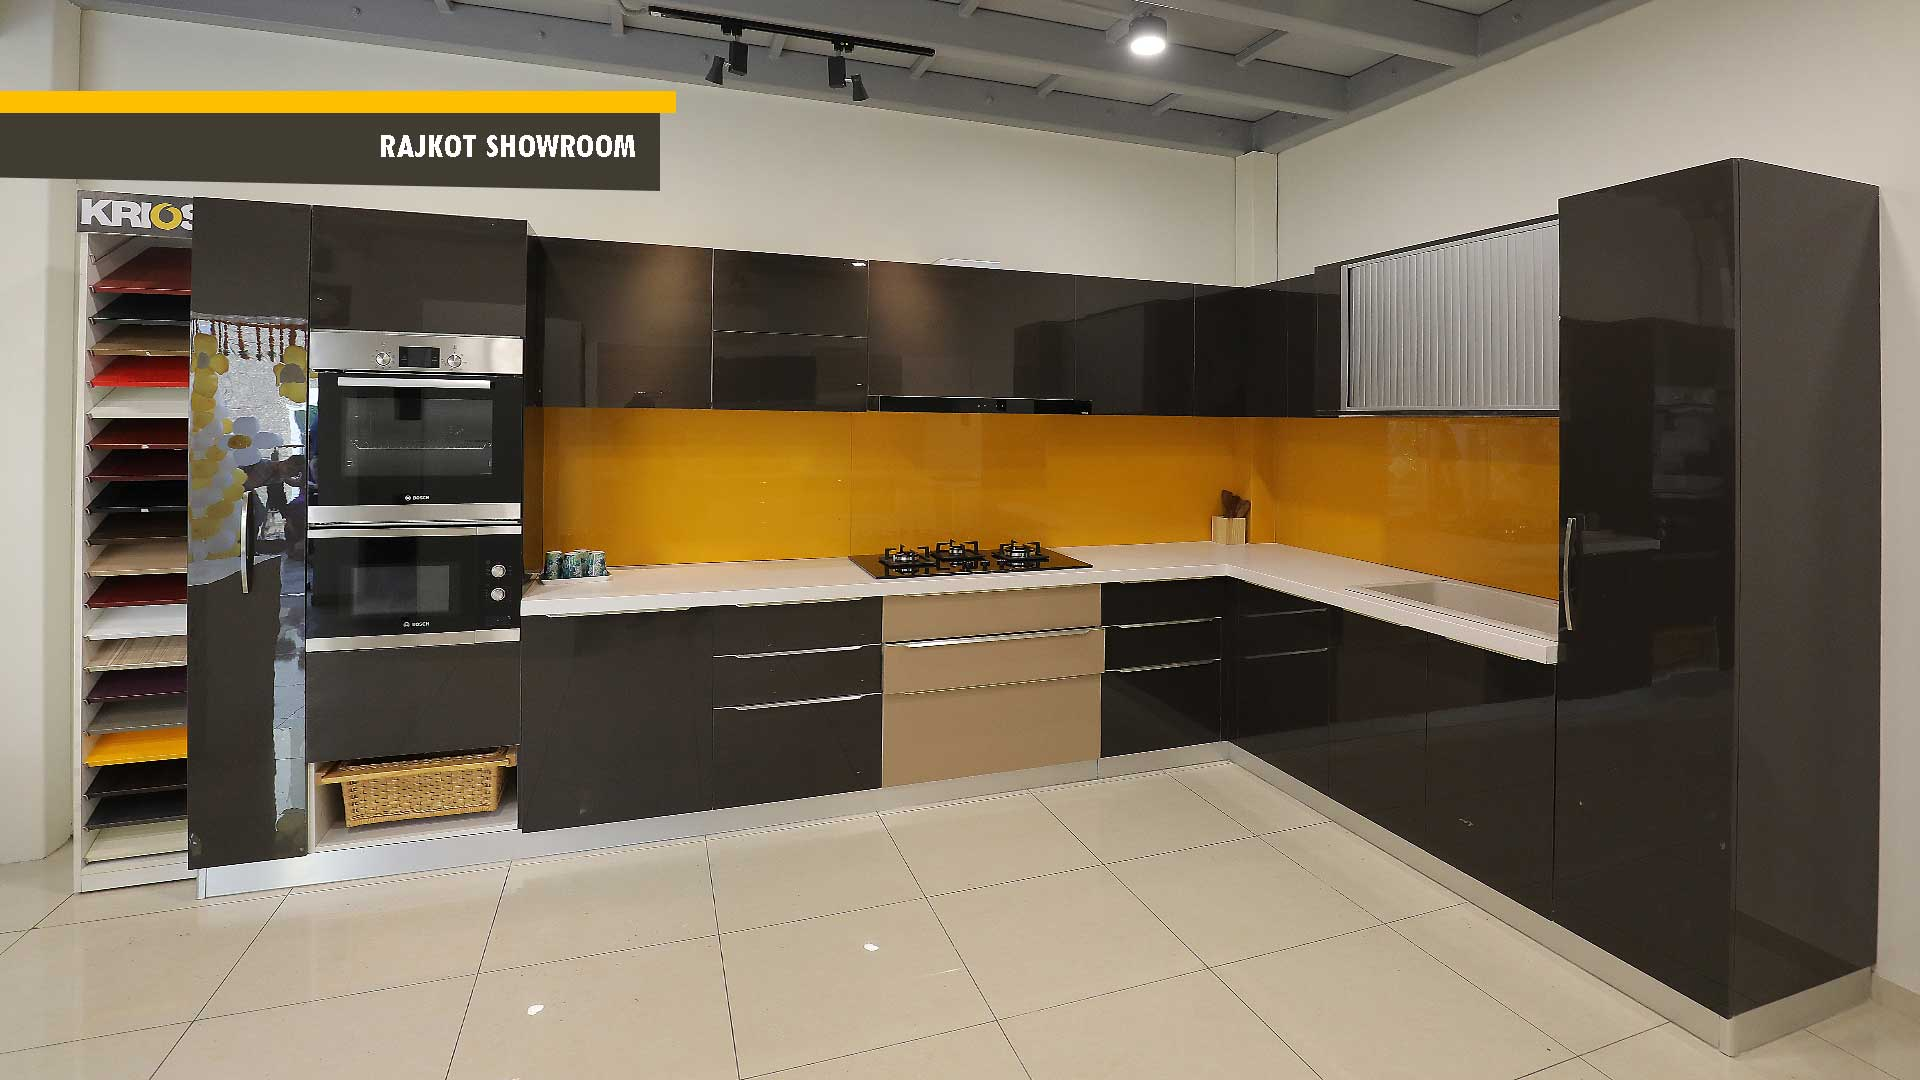 Modular Kitchens Ahmedabad | Buy Modular Kitchens Online